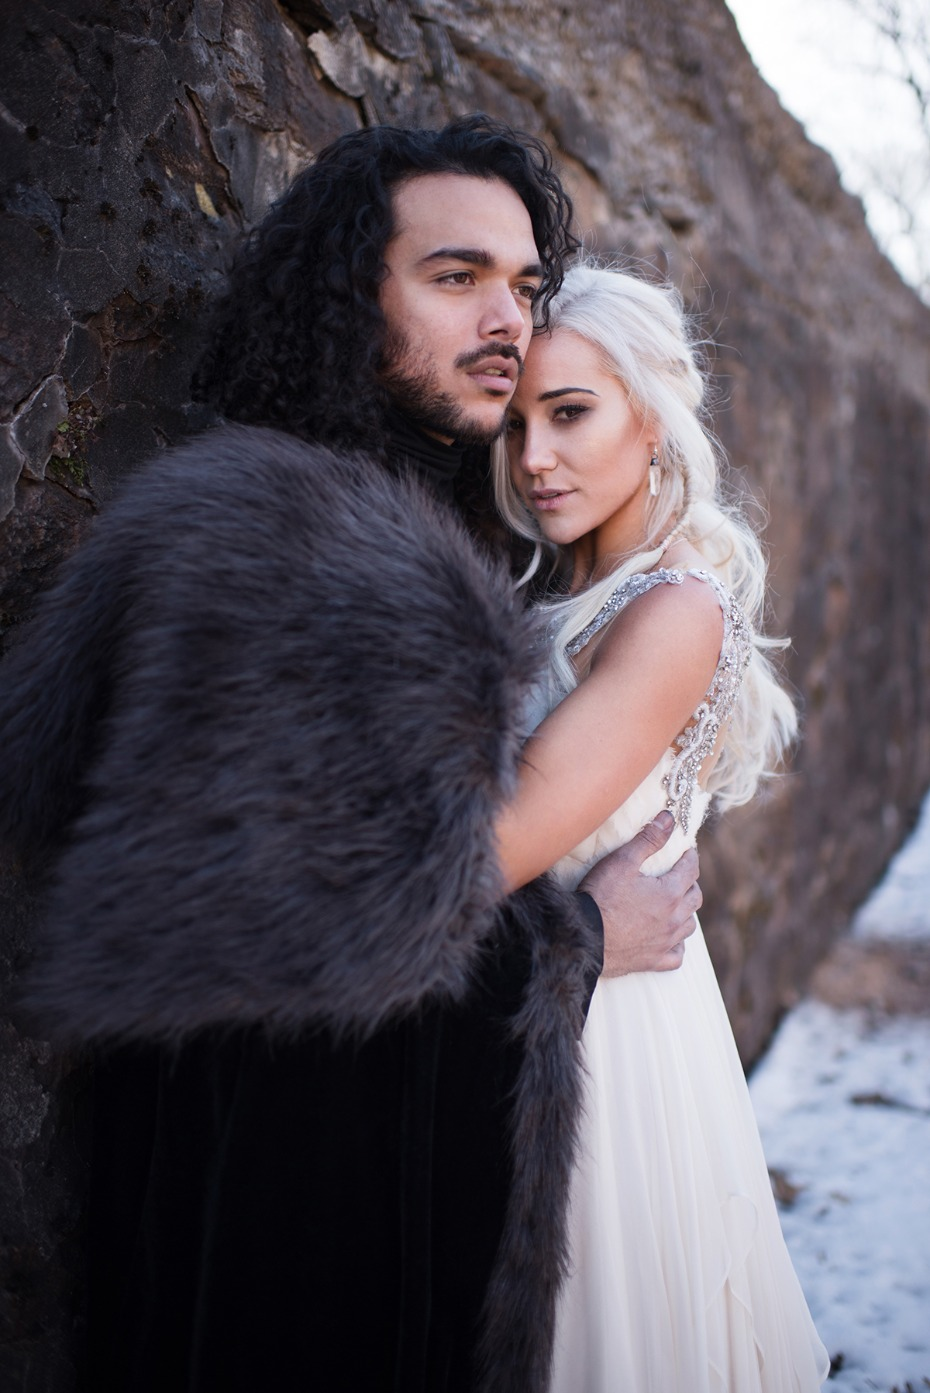 game of thrones wedding ideas